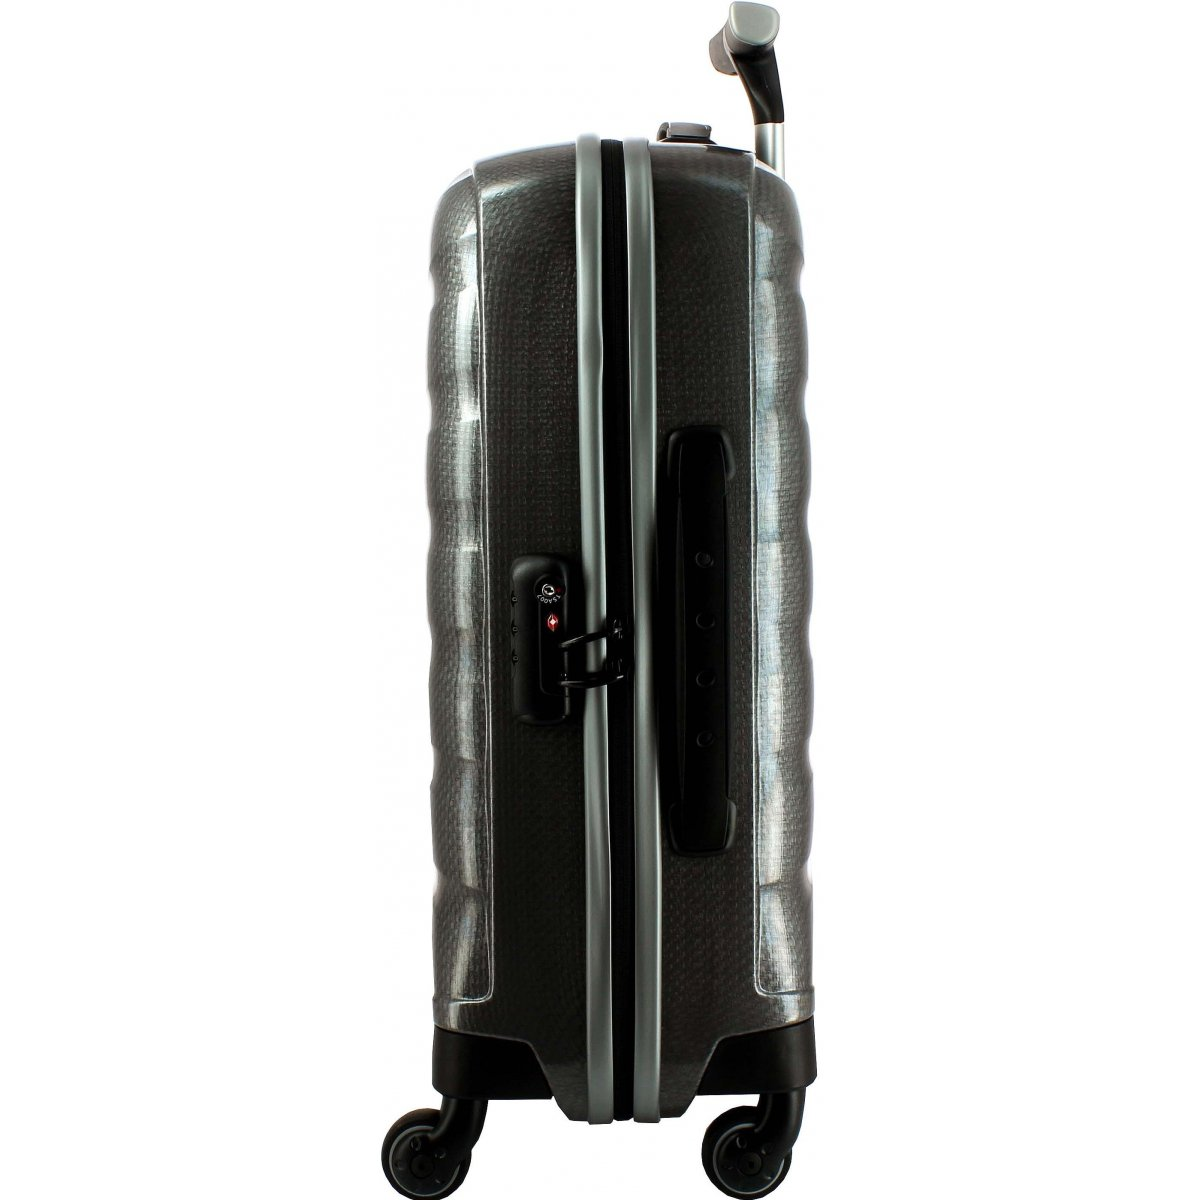 valise cabine samsonite firelite spinner 55cm firelite59 couleur principale gris eclipse. Black Bedroom Furniture Sets. Home Design Ideas